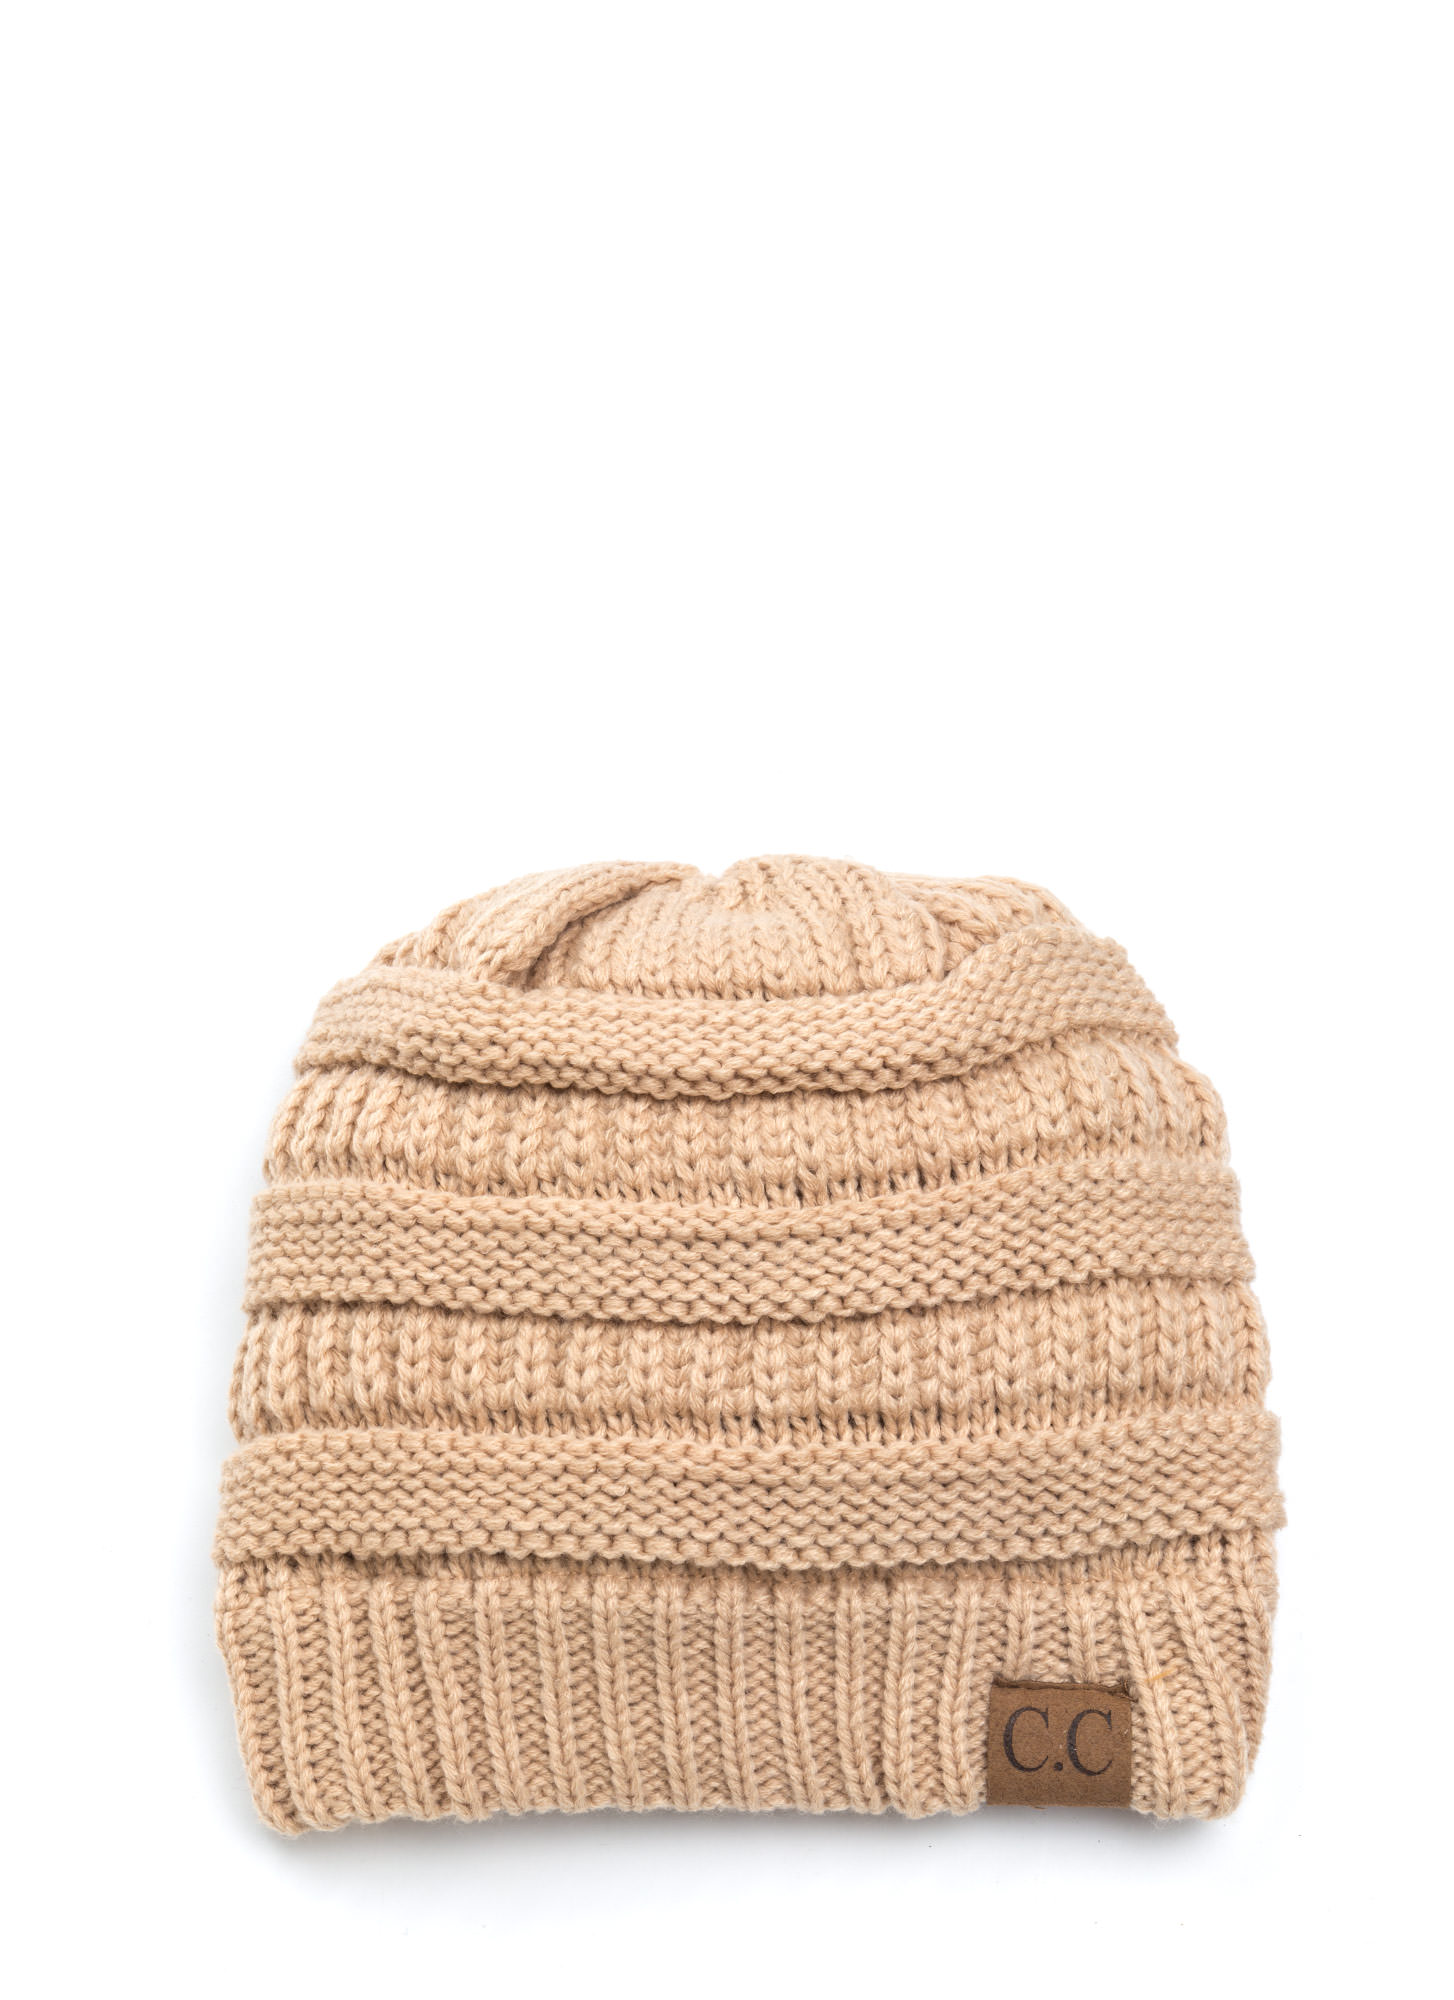 Cozy CC Cable Knit Beanie SAND (Final Sale)